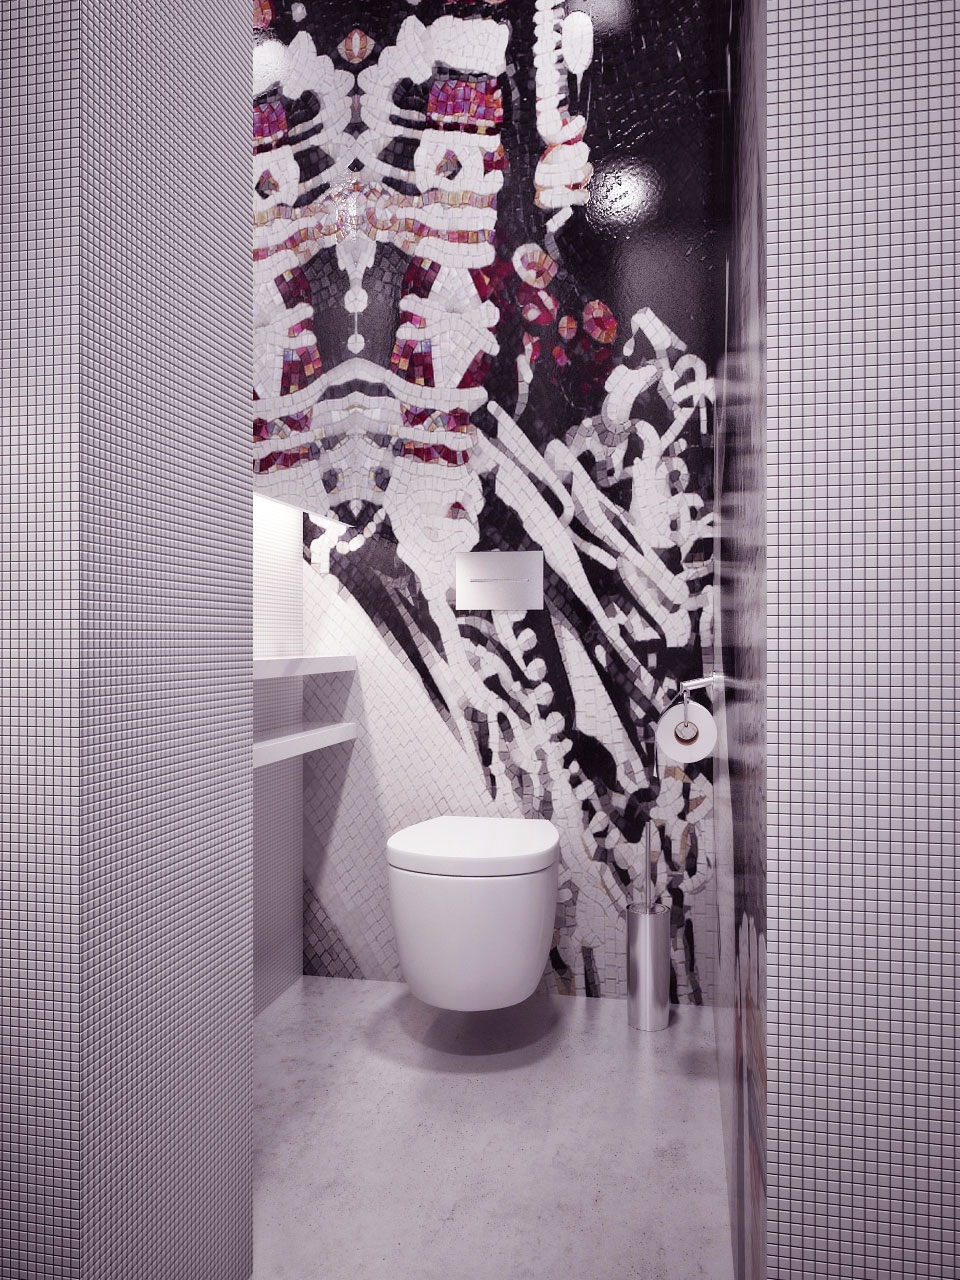 Apartment interior photo geous detail mosaic tile bathroom design